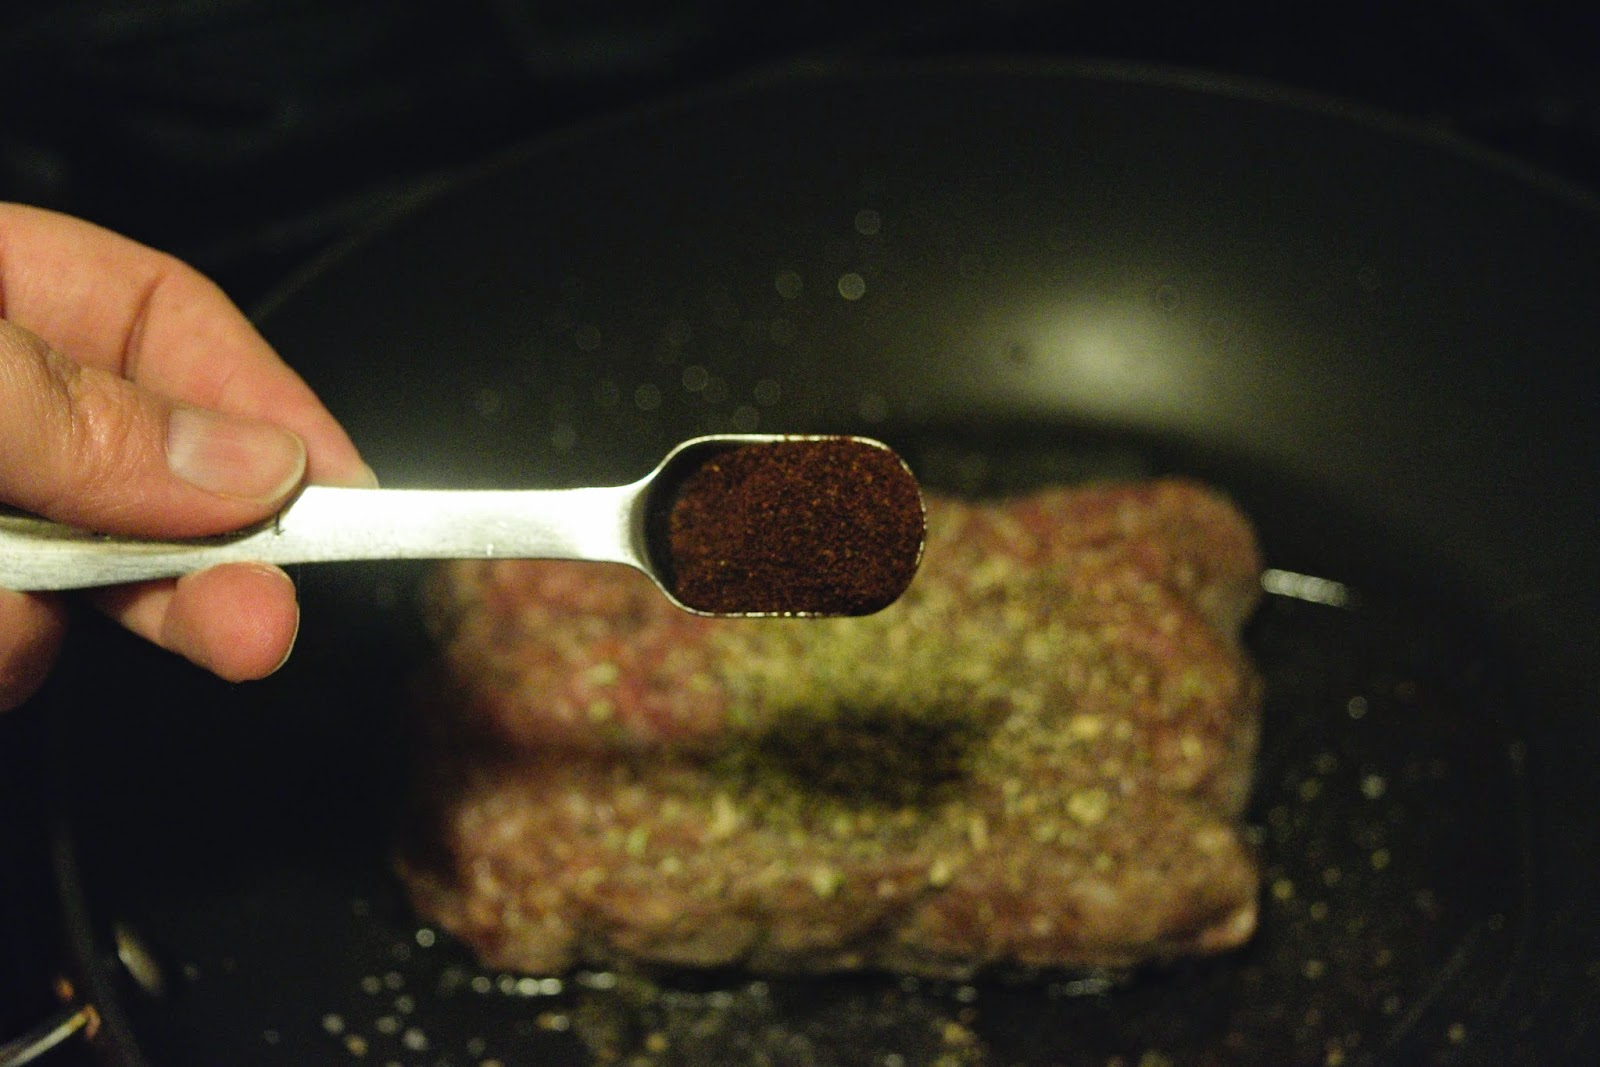 Chili powder being added to the ground beef in the pan.